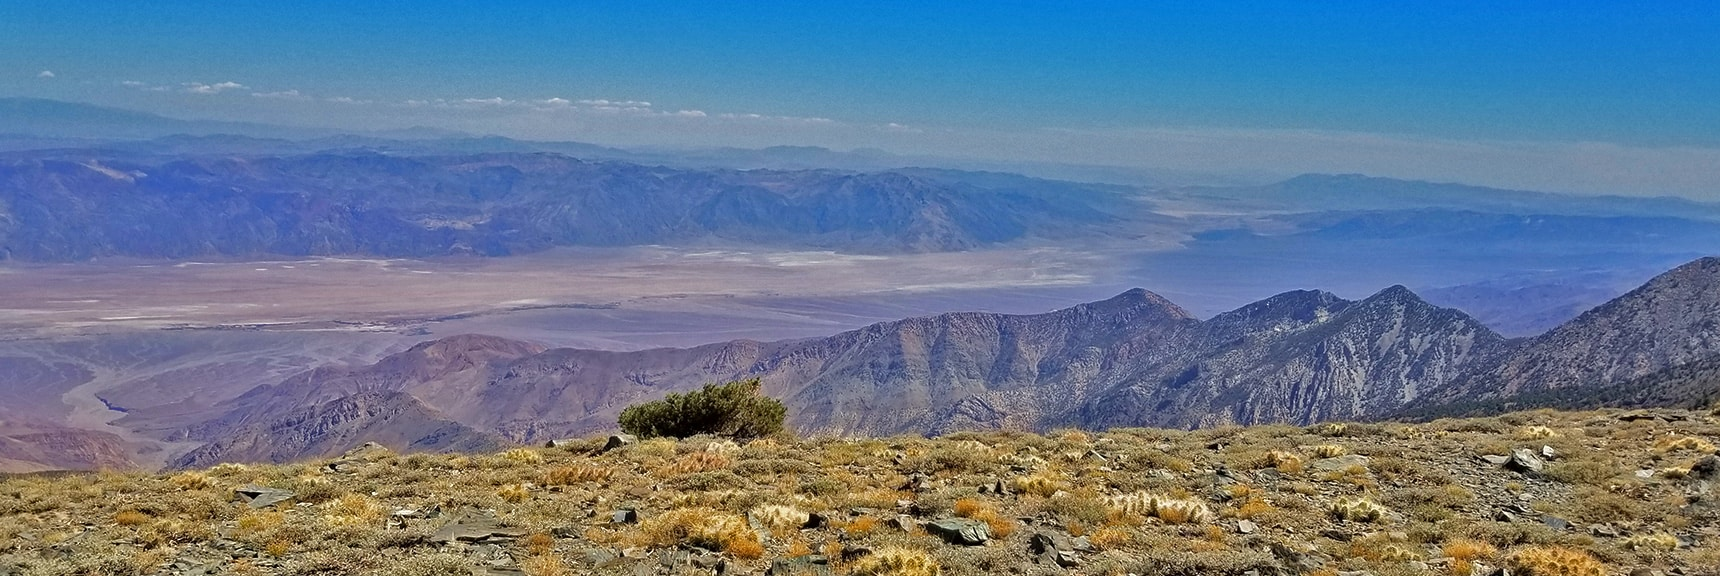 Southern Death Valley Stretches Out Below Bennett Peak Summit   Telescope Peak Summit from Wildrose Charcoal Kilns Parking Area, Panamint Mountains, Death Valley National Park, California